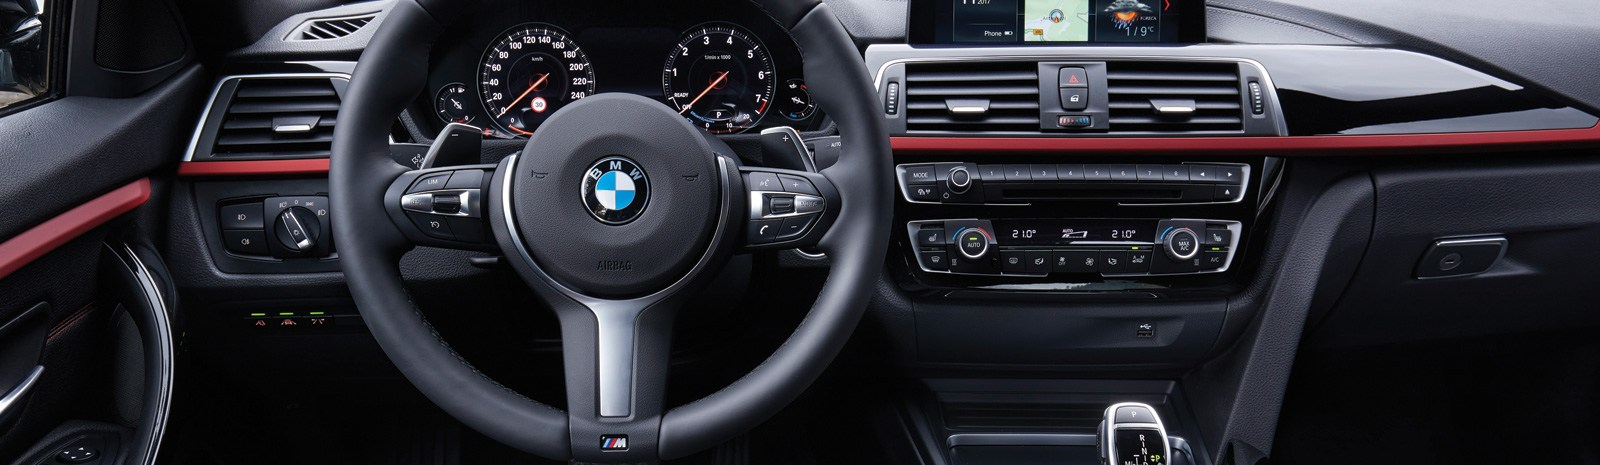 BMW vehicle interior